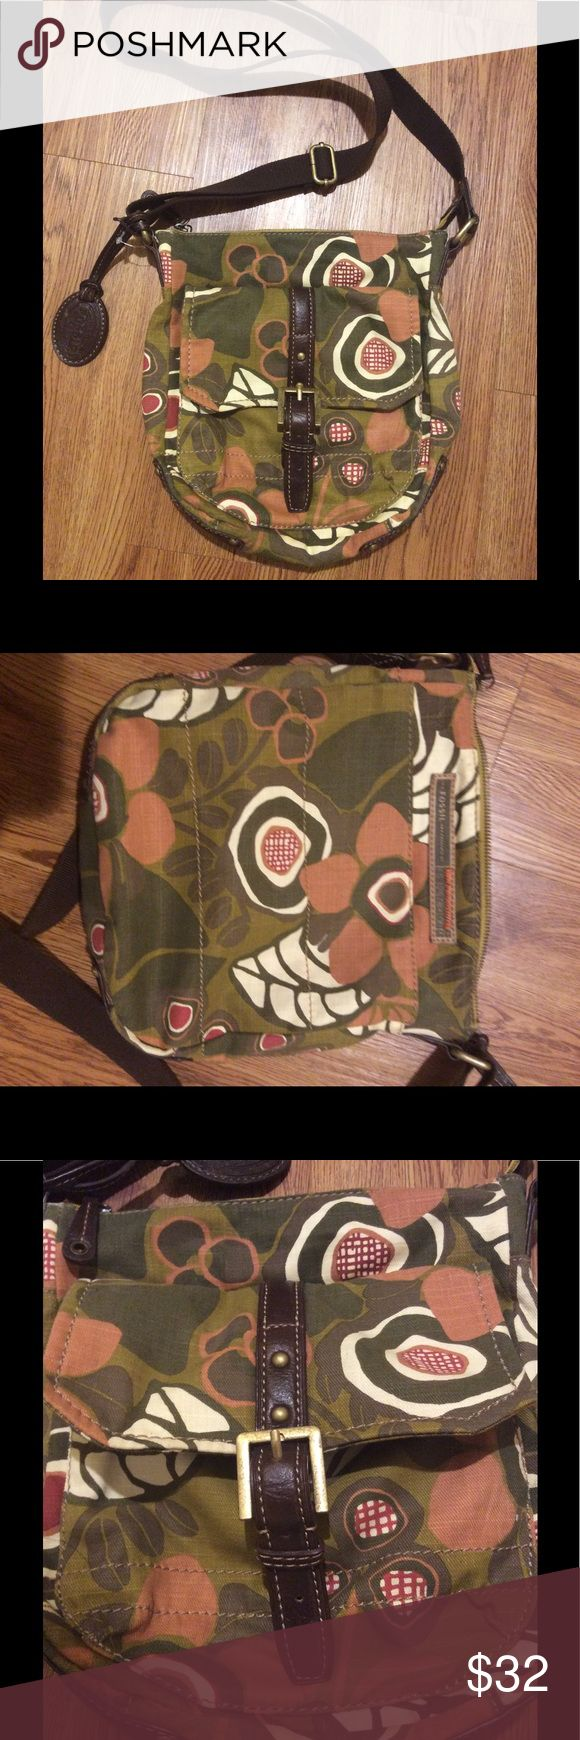 NWOT Fossil Vintage stock Floral Crossbody New without tags, brown leather trim, adjustable strap up to 23.5 inches, front pocket with magnetic snap, man compartment has 2 pockets, size 9wx11 height, 2.5 inches deep, cotton Fossil Bags Crossbody Bags